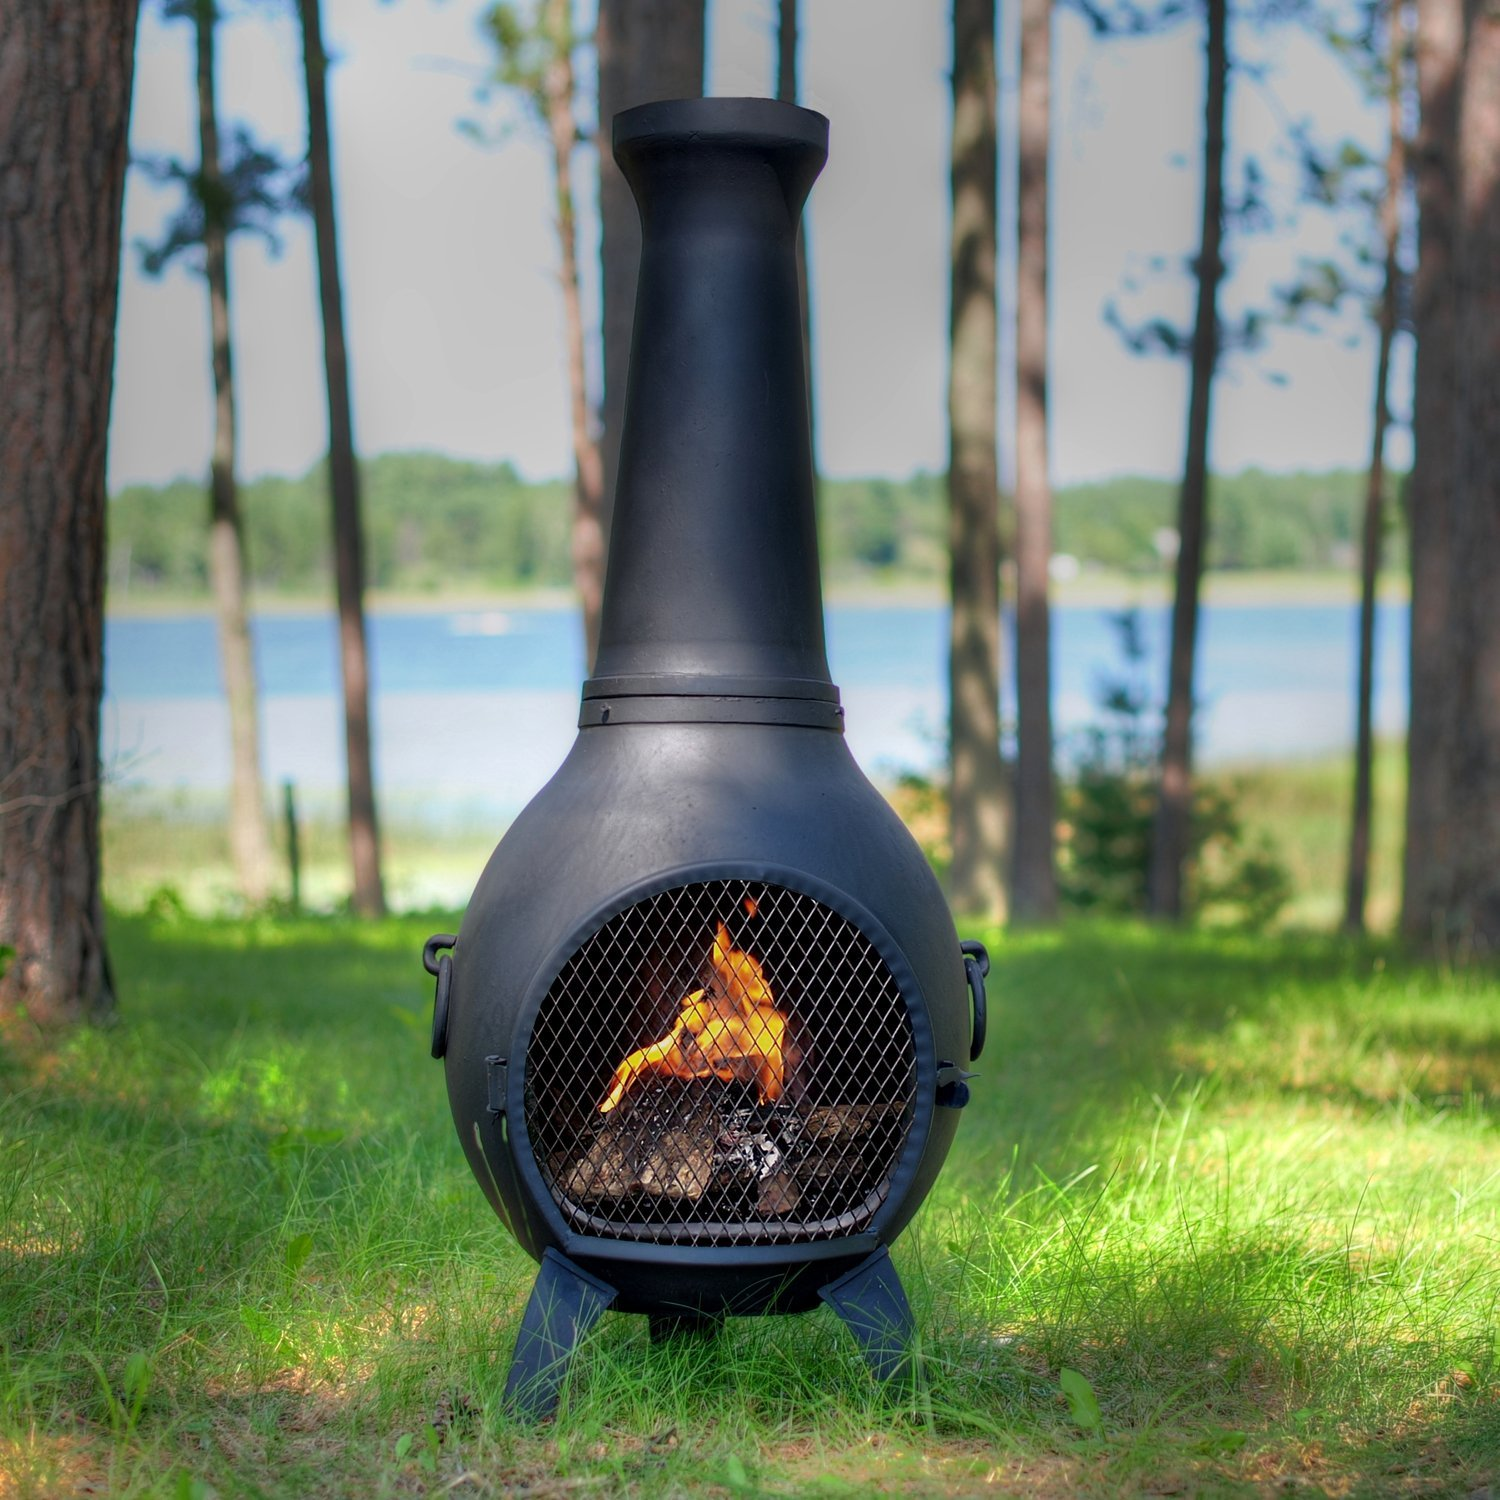 - Want To Buy A Chiminea, Fire Pit, Or Ethanol Fireplace? - OutsideModern